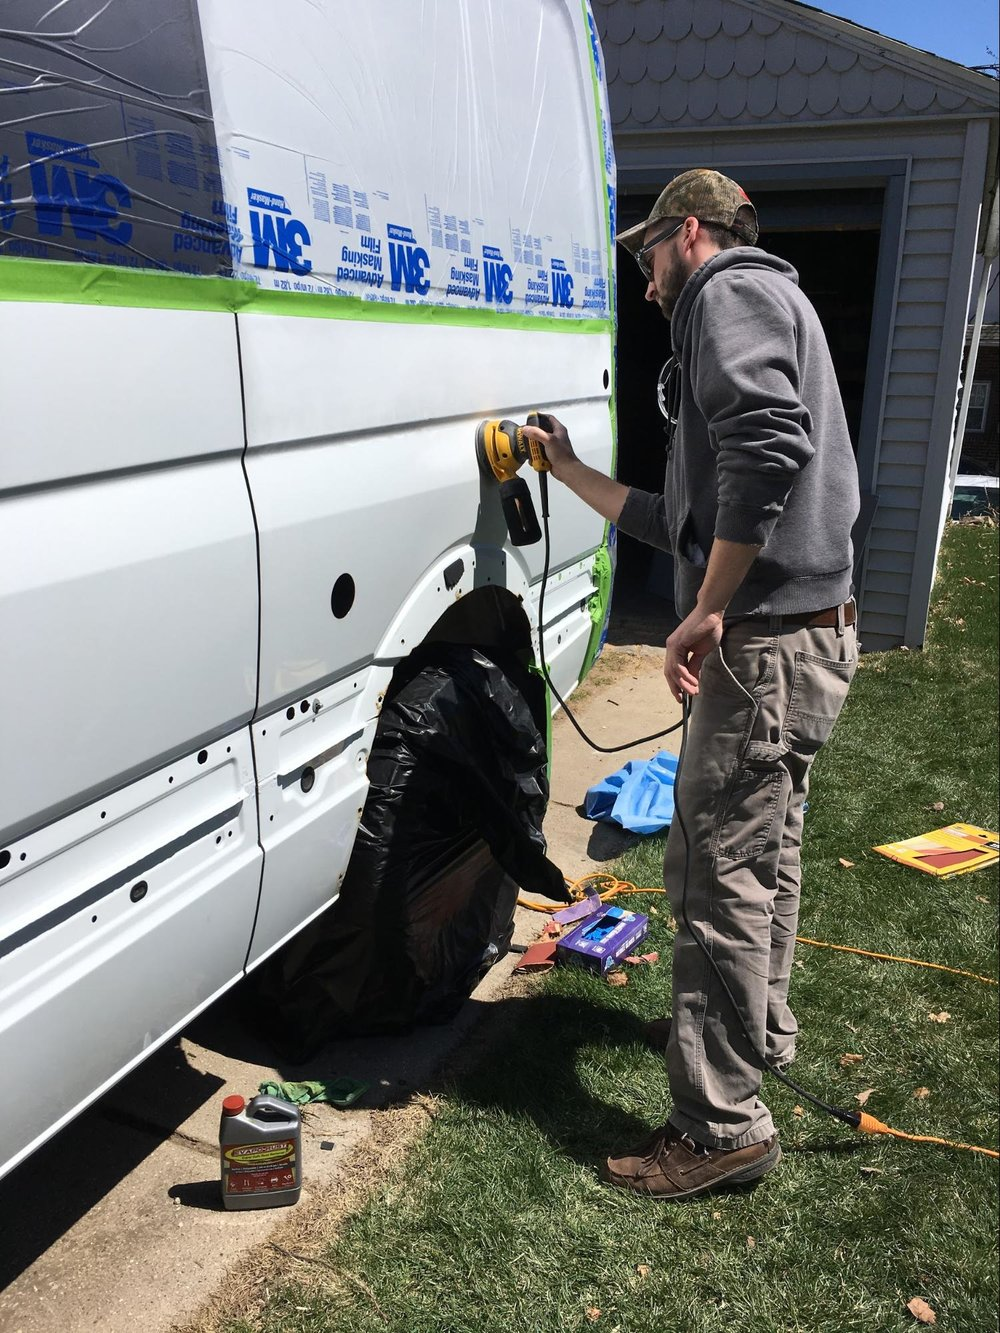 sanding body of sprinter van